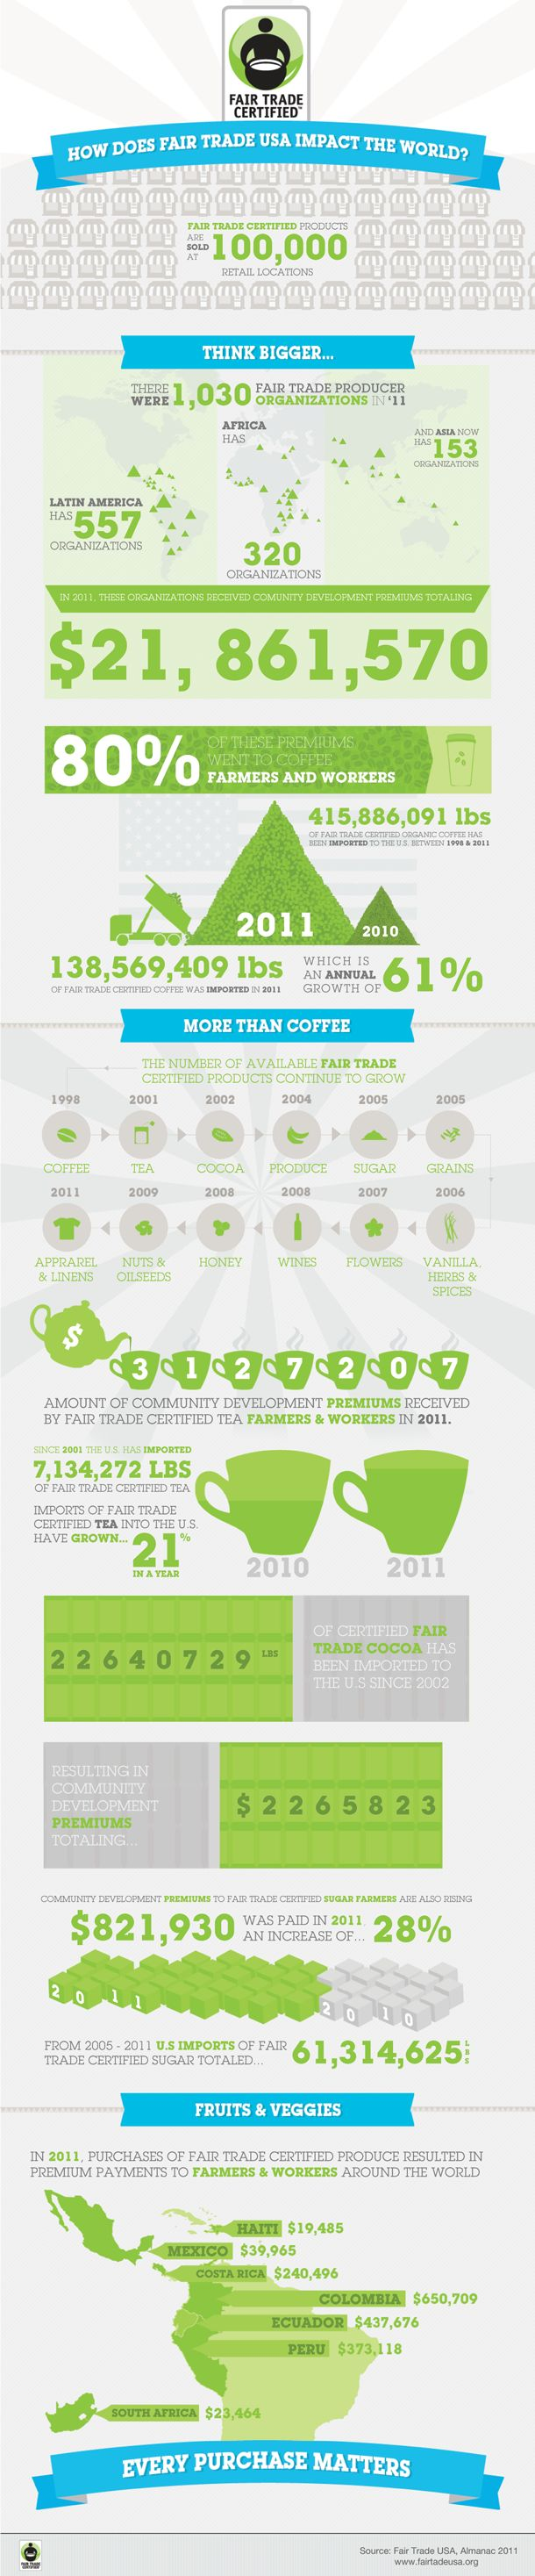 INFOGRAPHIC WHAT IS THE REAL IMPACT OF FAIR TRADE? by